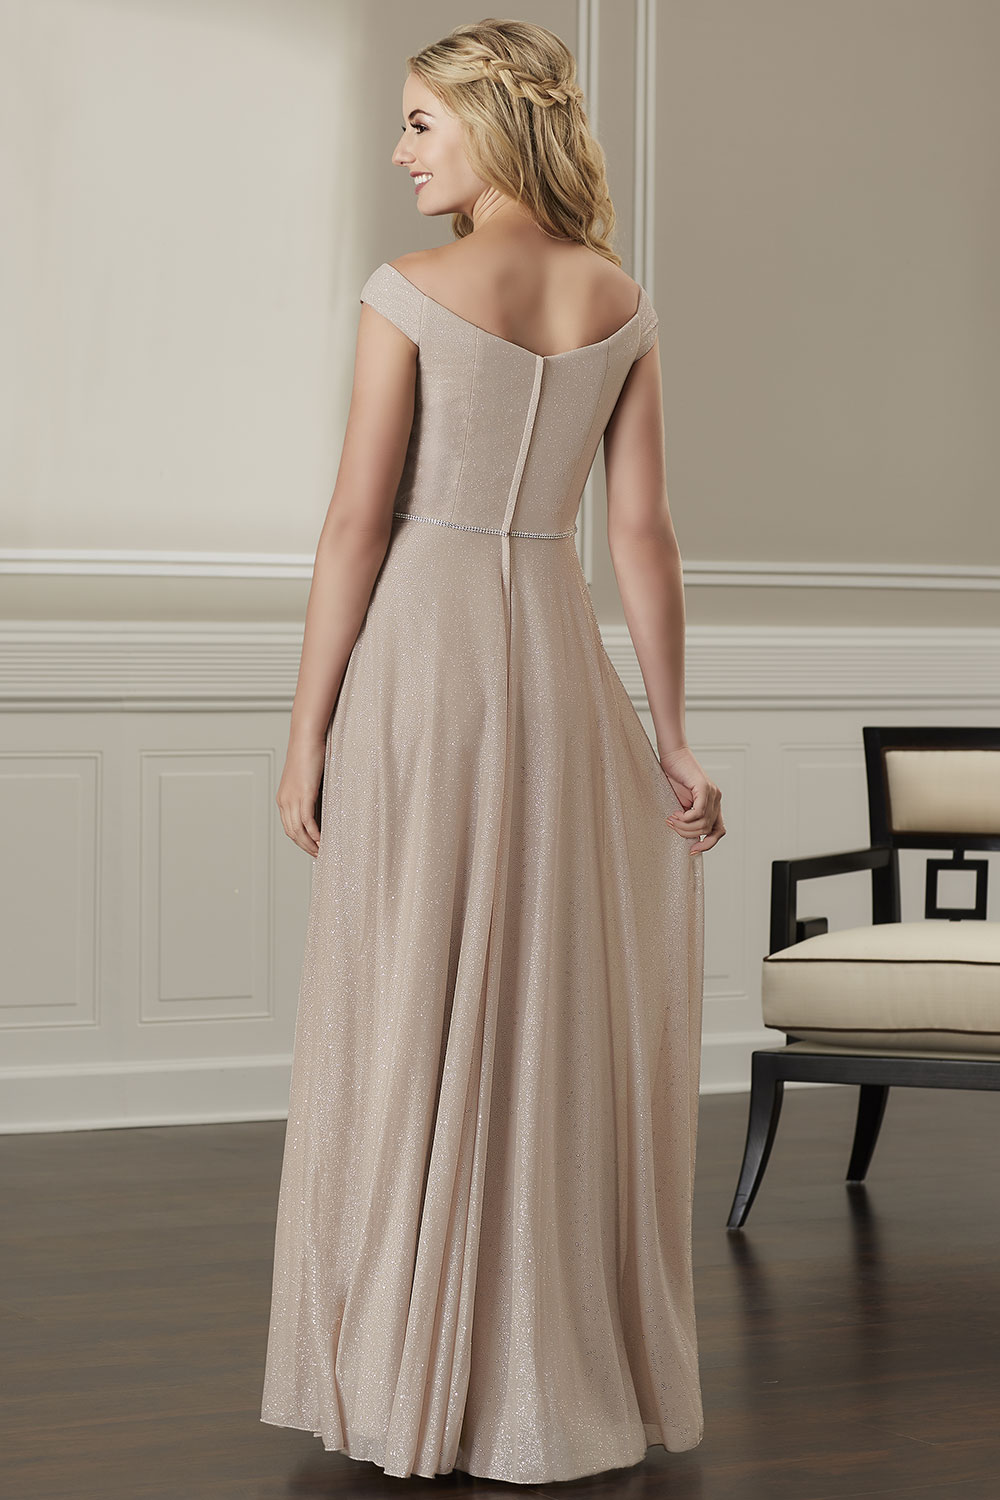 bridesmaid-dresses-jacquelin-bridals-canada-26823